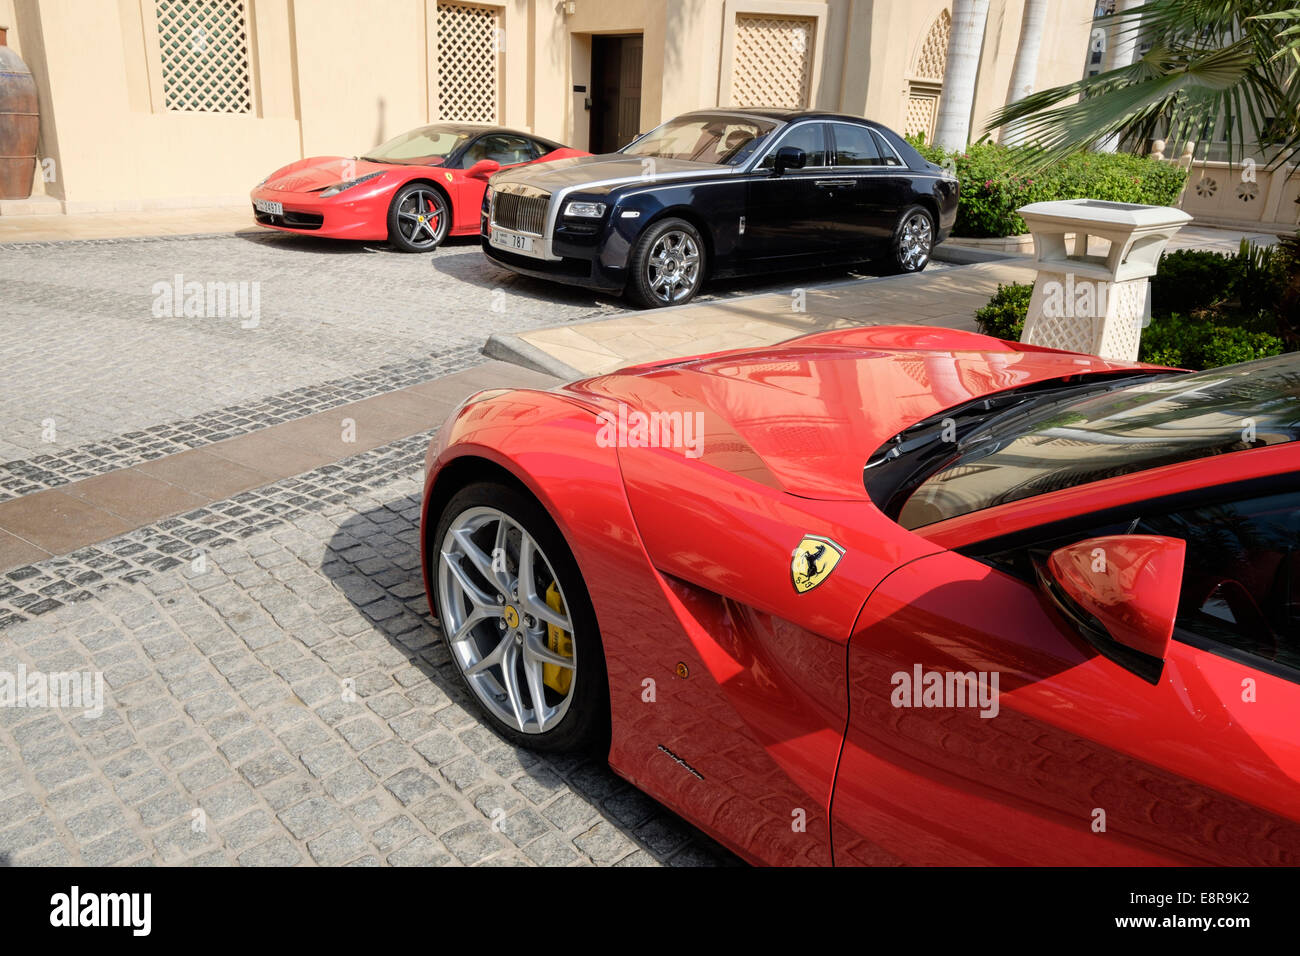 Luxury Cars Parked Outside 5 Star Hotel In Dubai United Arab